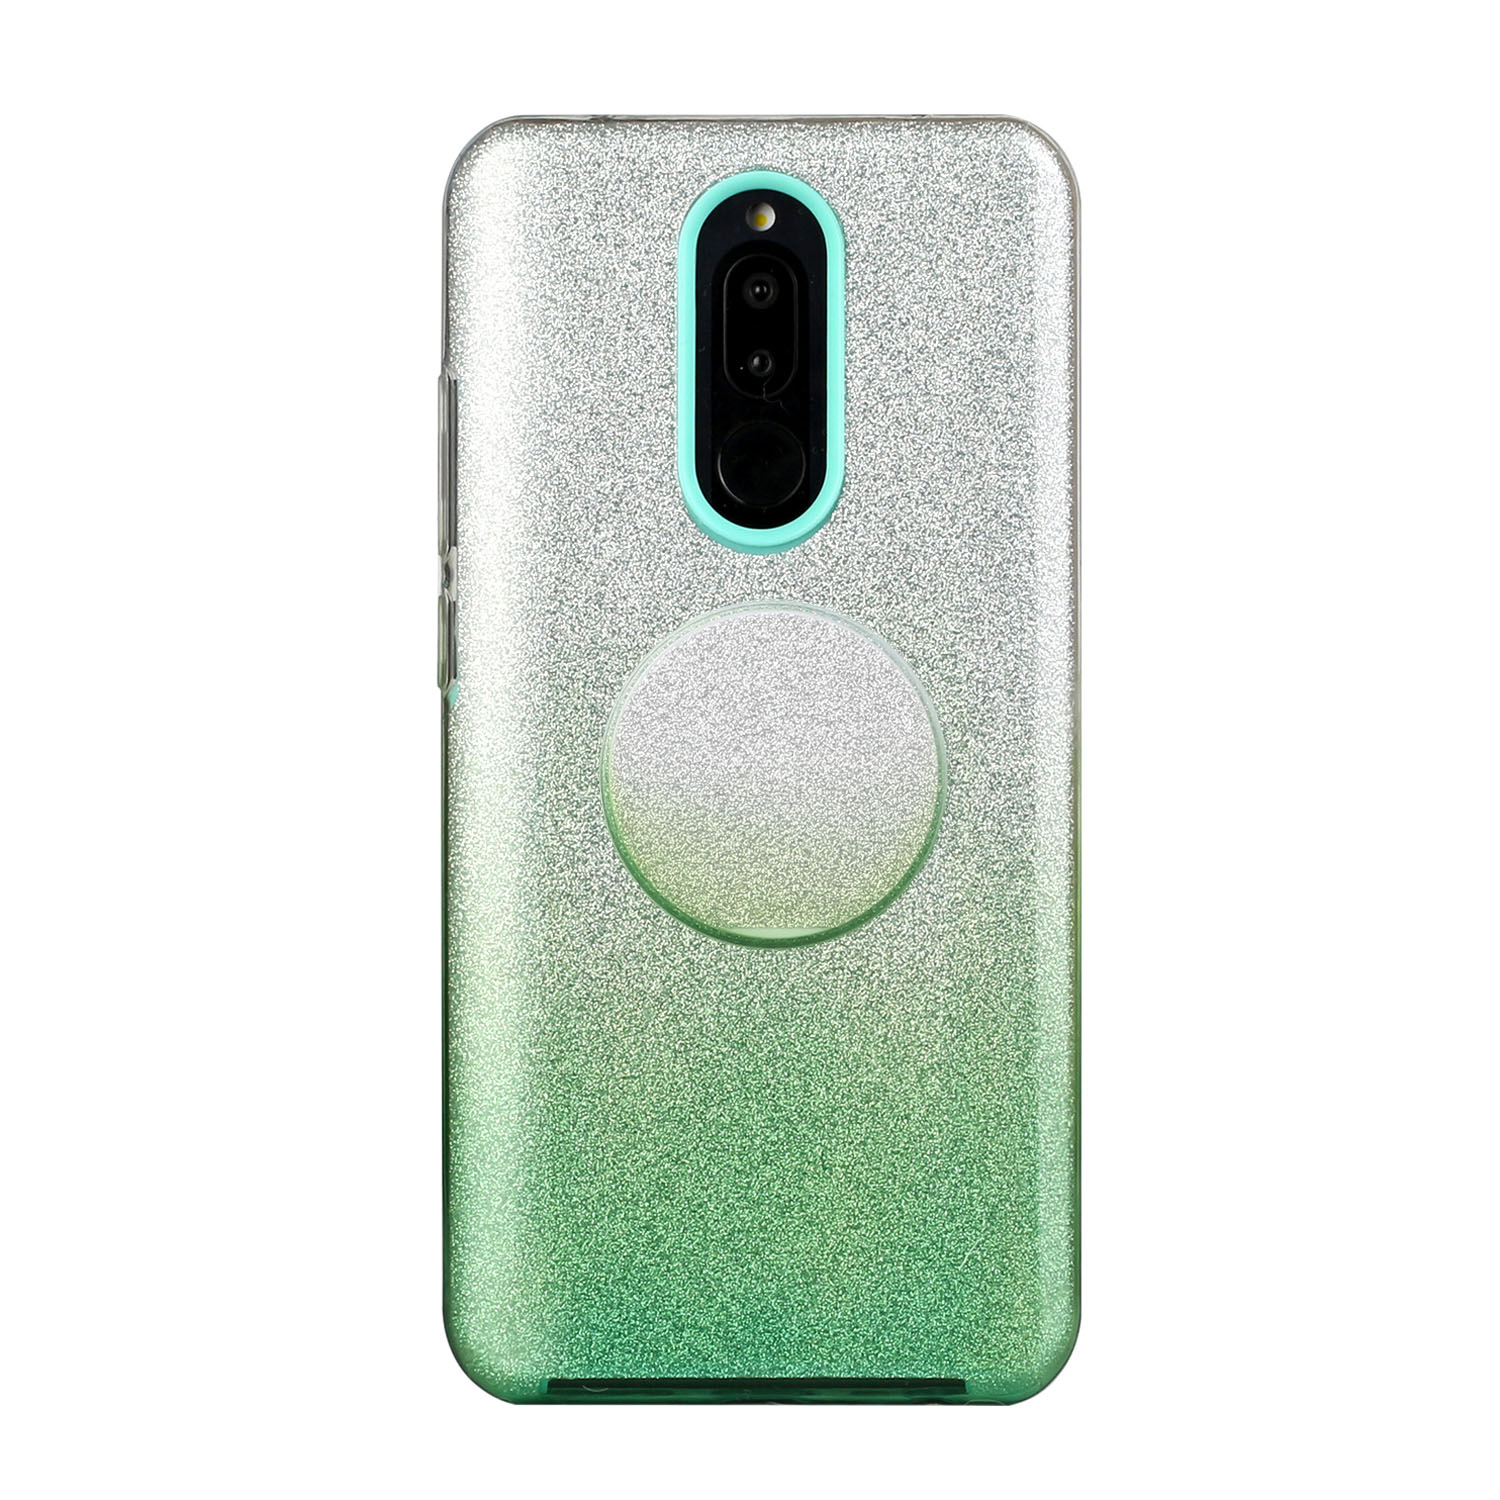 For OPPO F9/F9 Pro/A7X/F11 Pro/A8/A31 Phone Case Gradient Color Glitter Powder Phone Cover with Airbag Bracket green